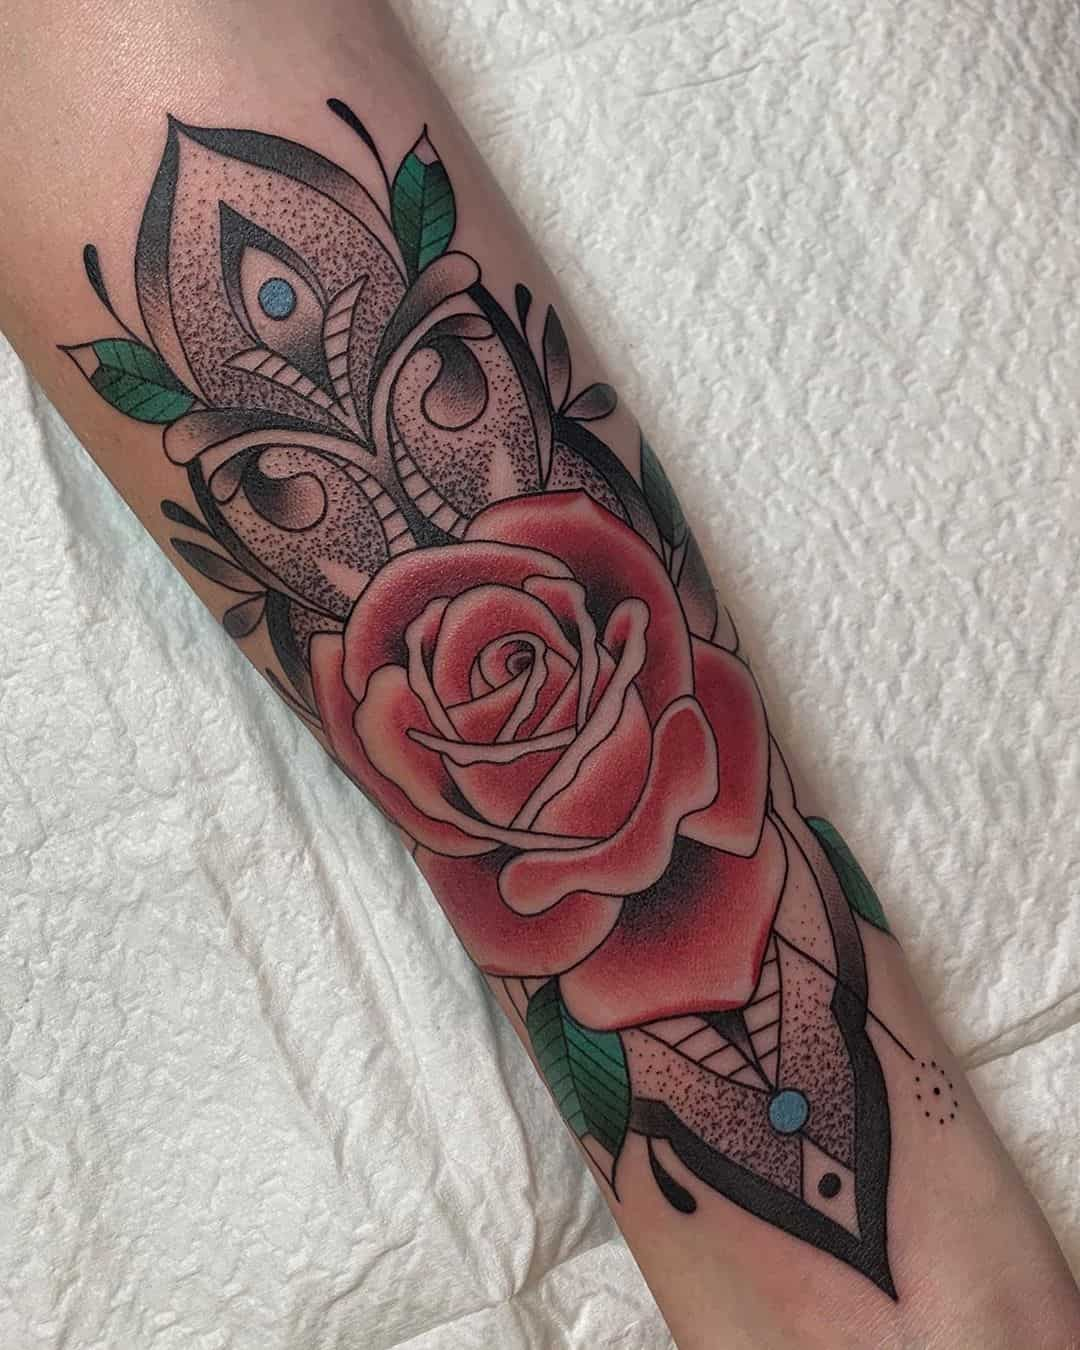 50 Unique Rose Tattoo Ideas For Women - Tattoo Inspirations for 2020